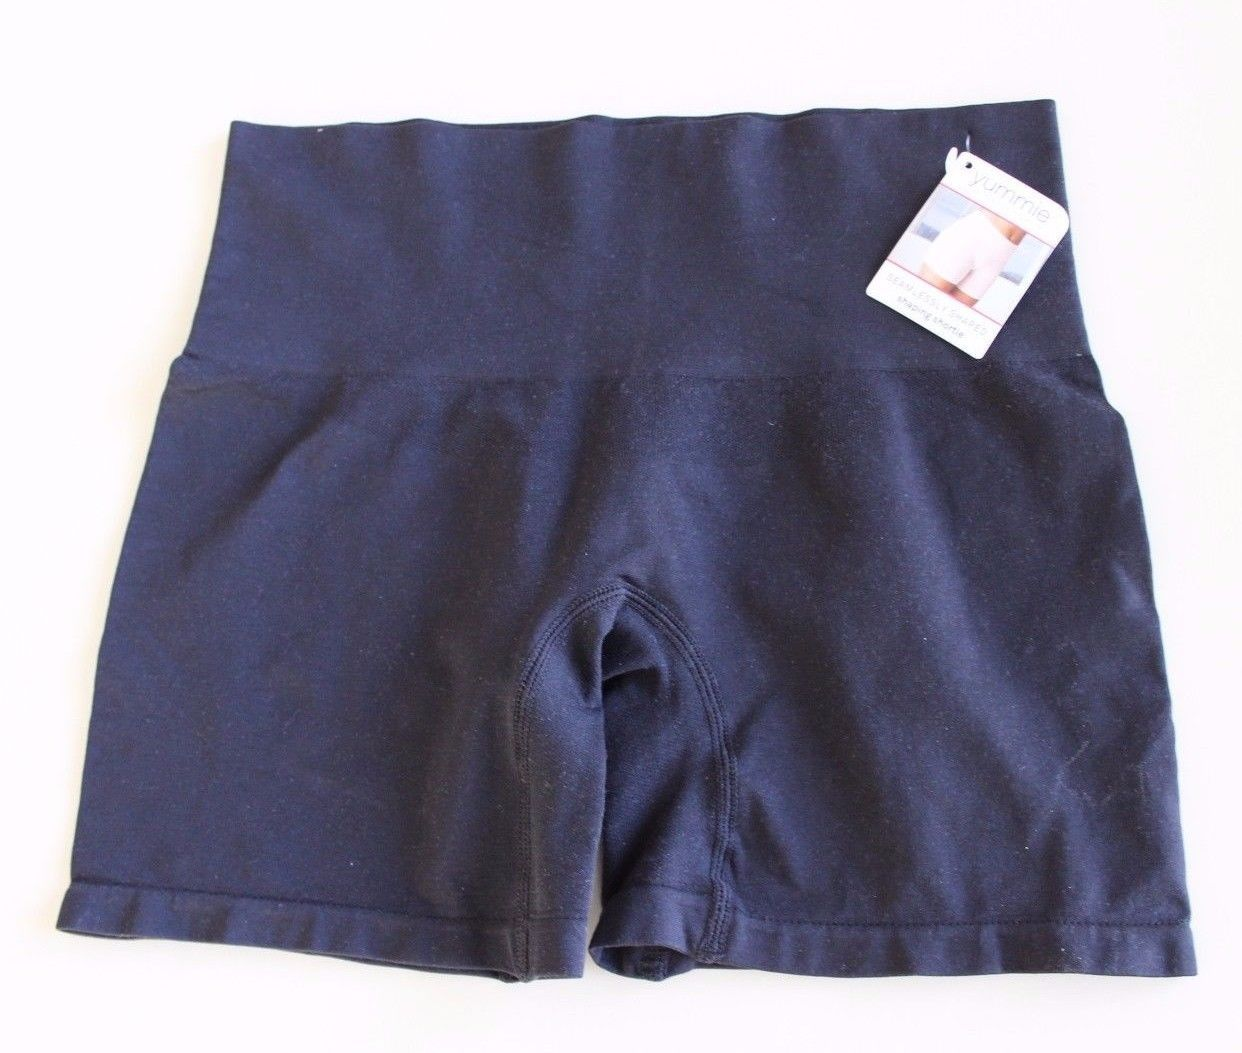 Yummie By Heather Thomson Nina Shaping Shortie Size L/XL YT5-004 BLACK - $13.83